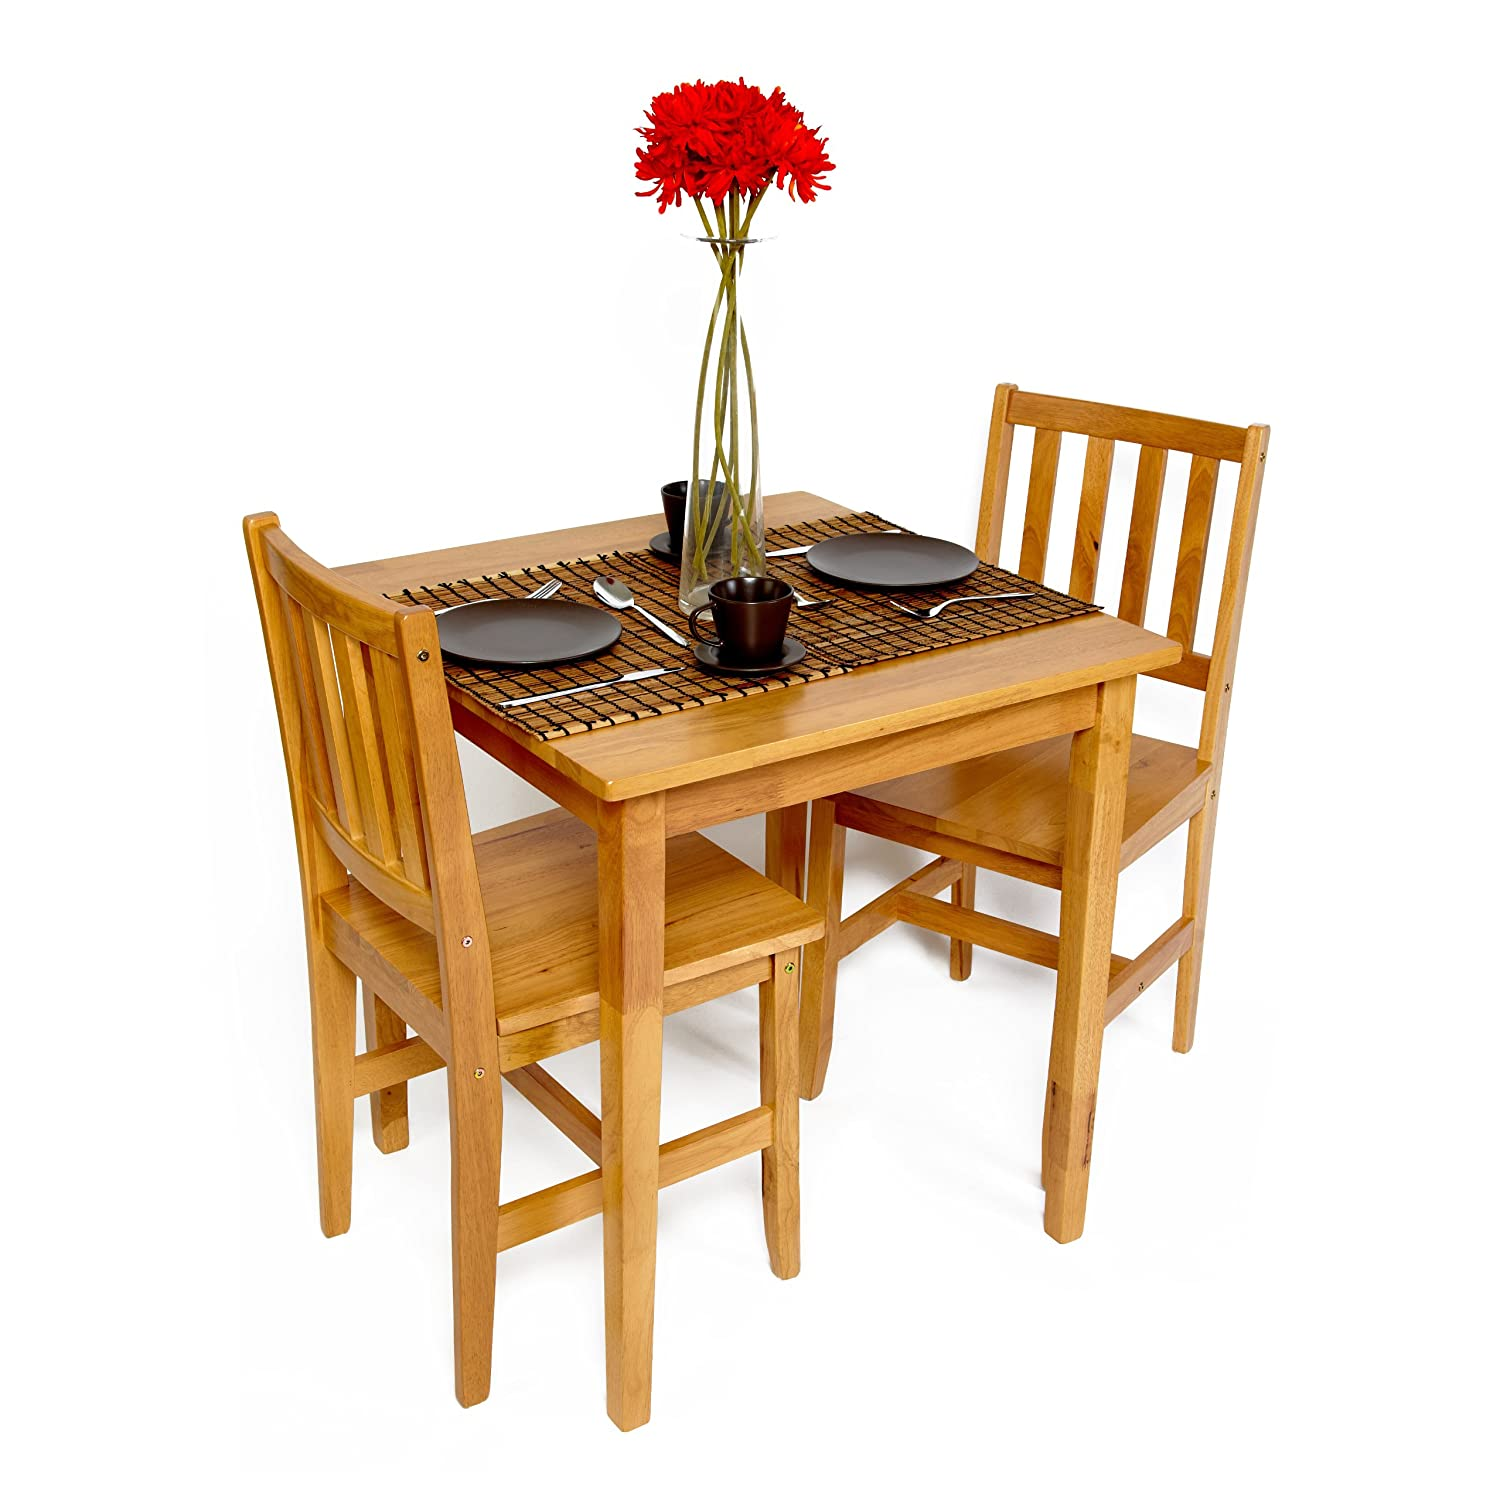 Table and chairs set dining bistro small cafe tables wood for Table and chair set